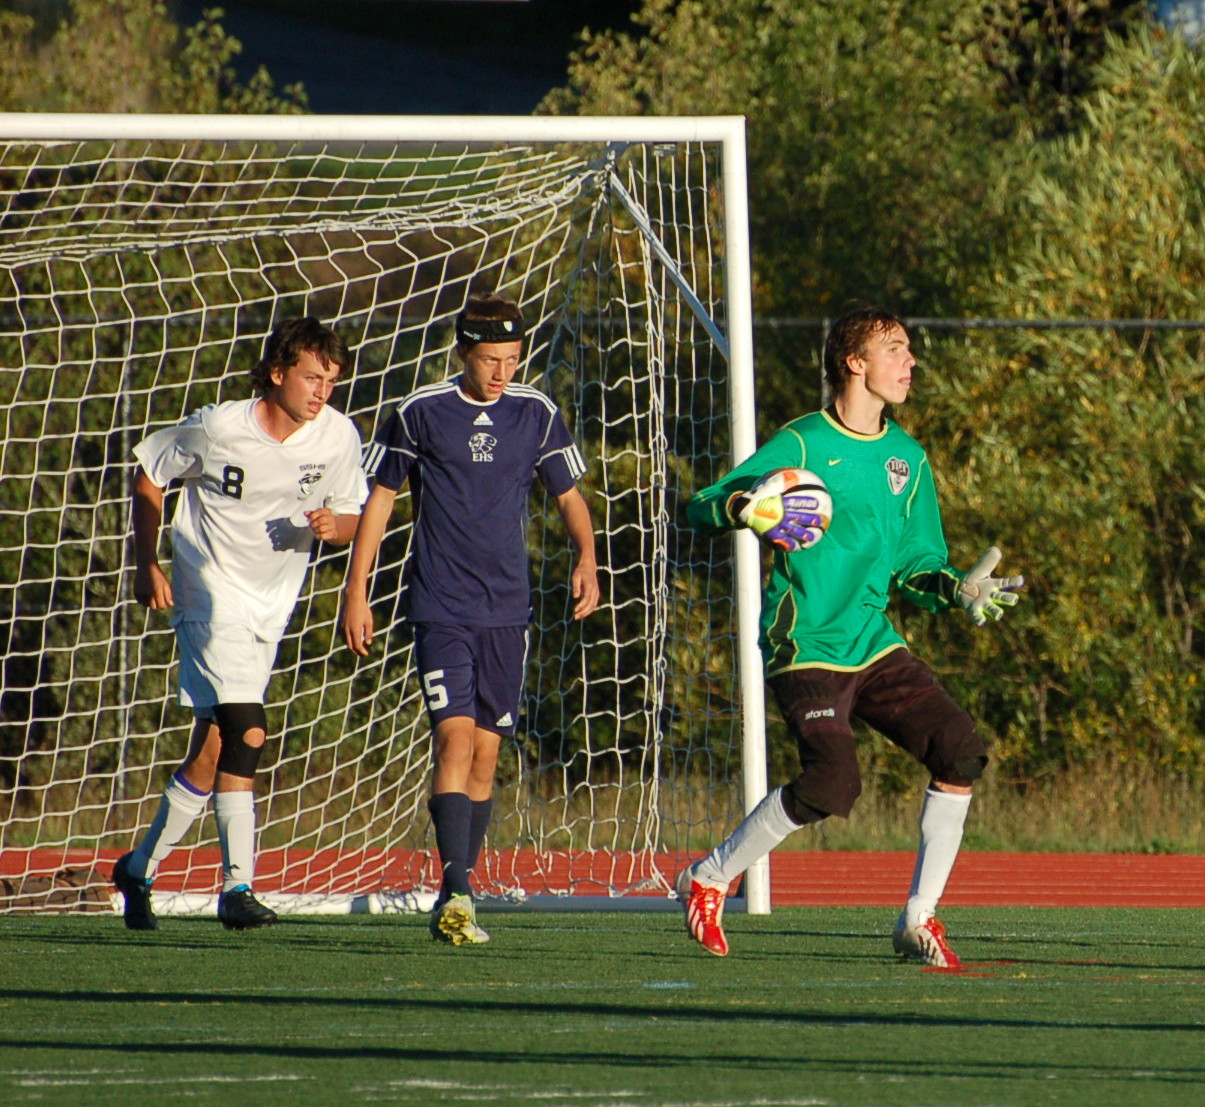 Goalie Jake Anderson makes the stop for the Sailors.